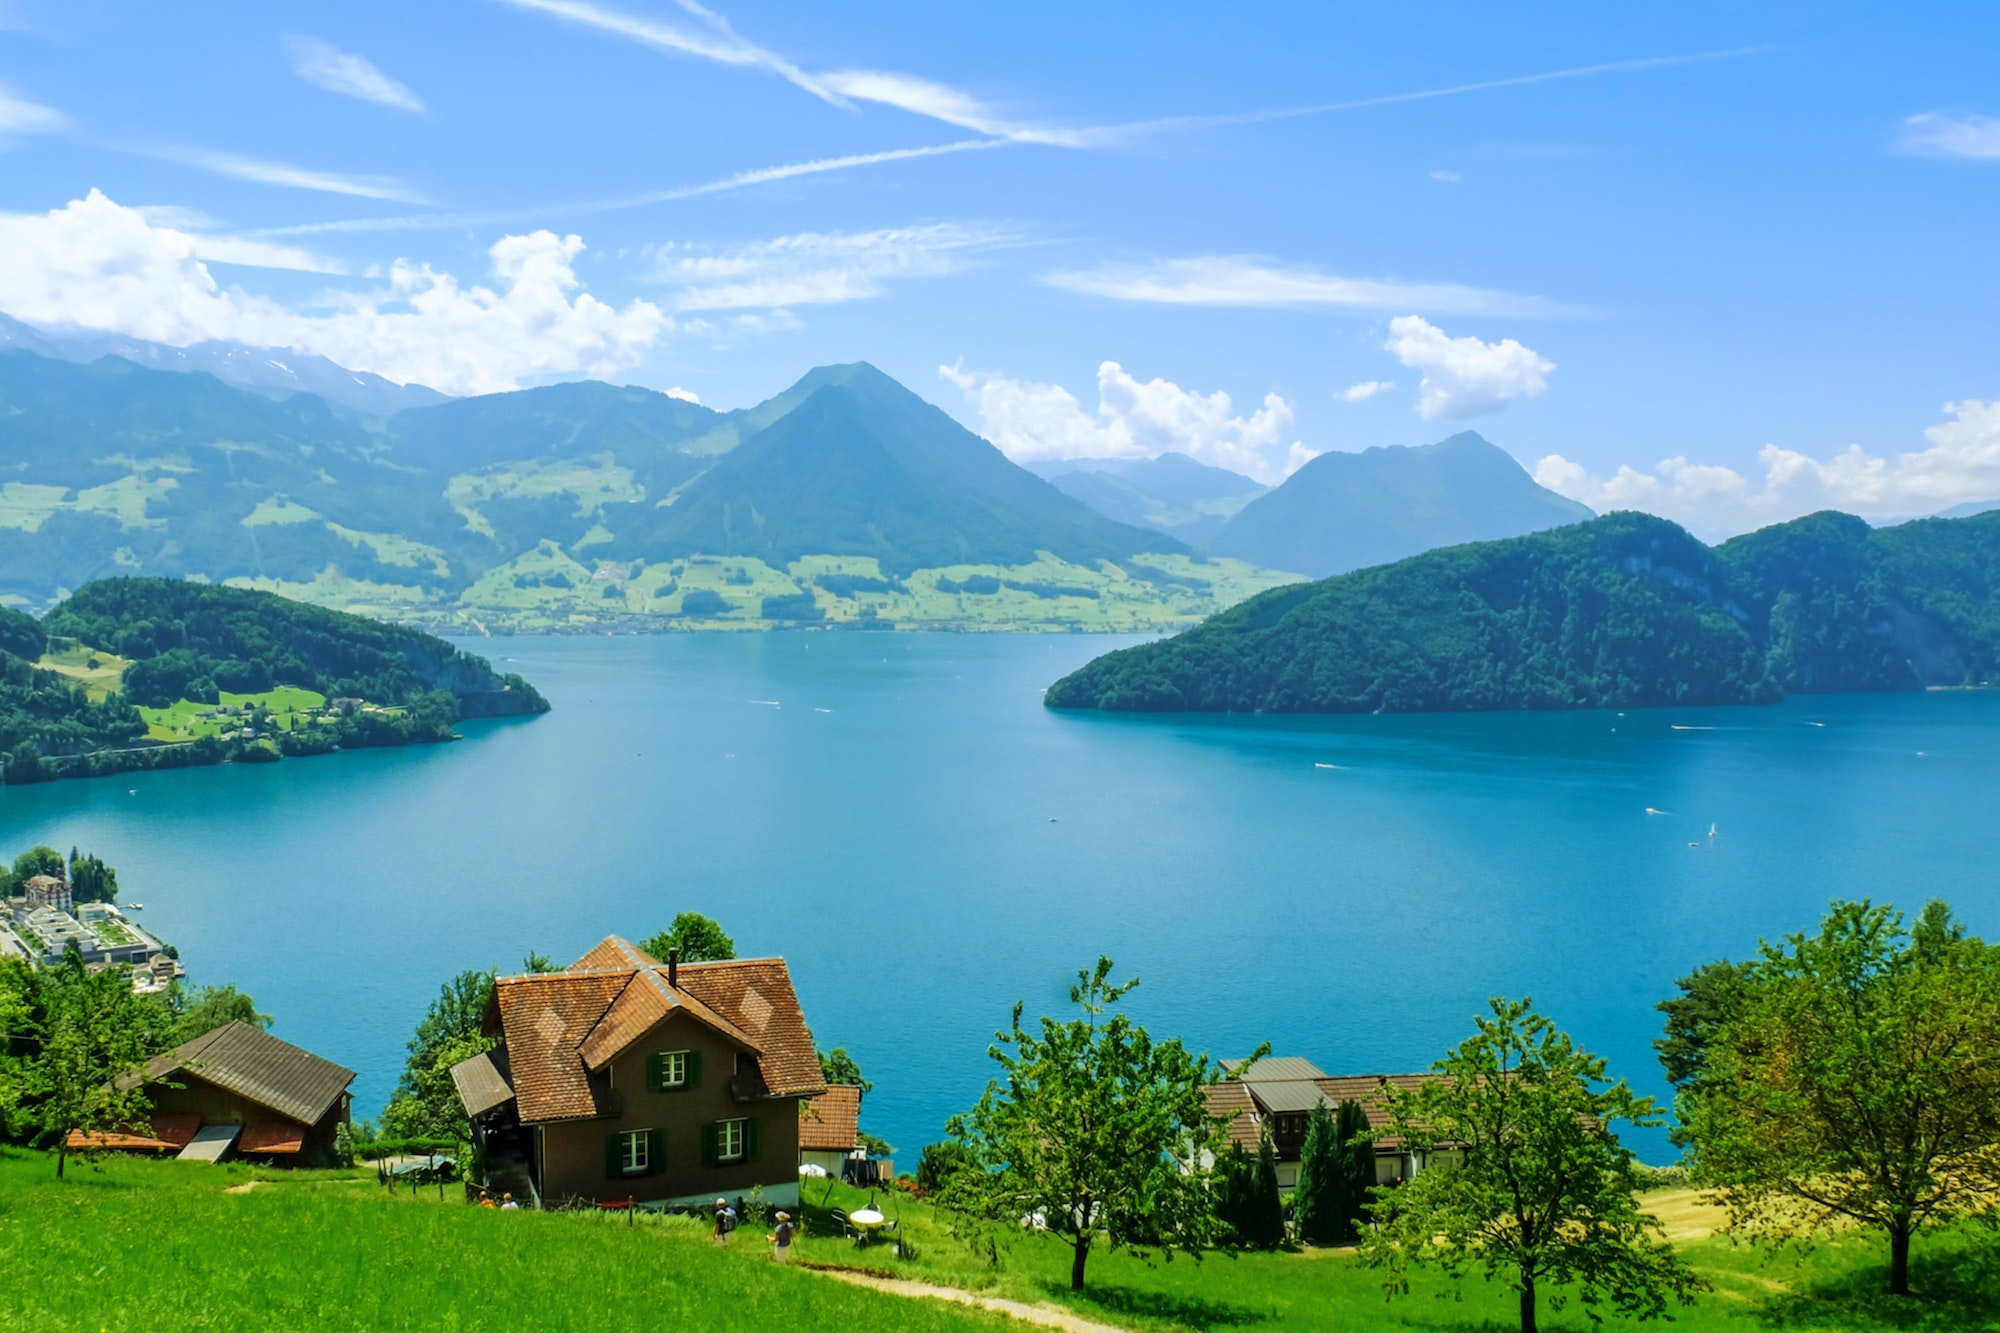 The view of Lake Lucerne from Mount Rigi.